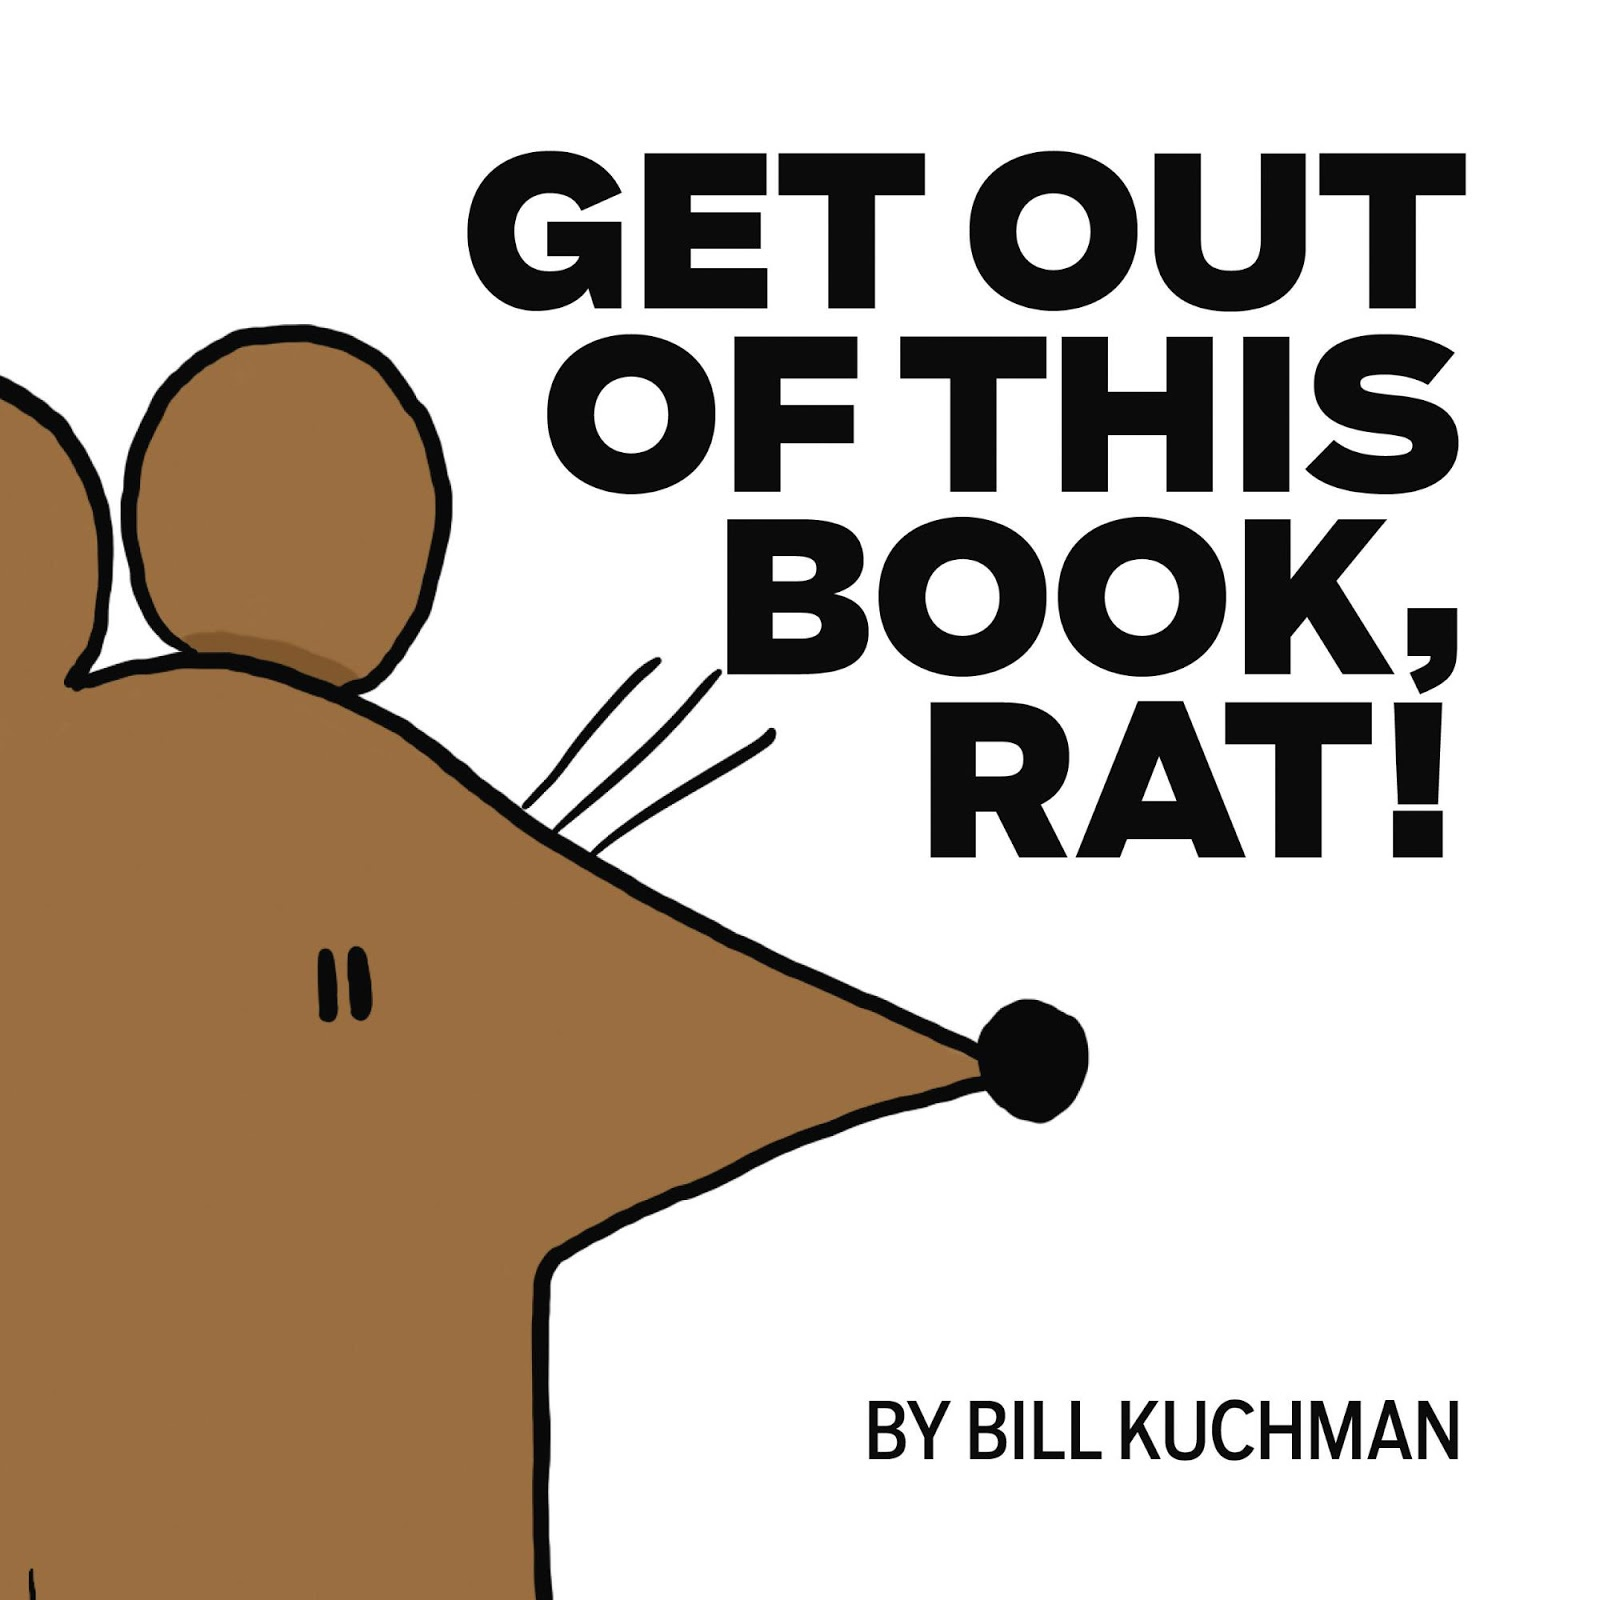 Get Out of This Book, Rat!